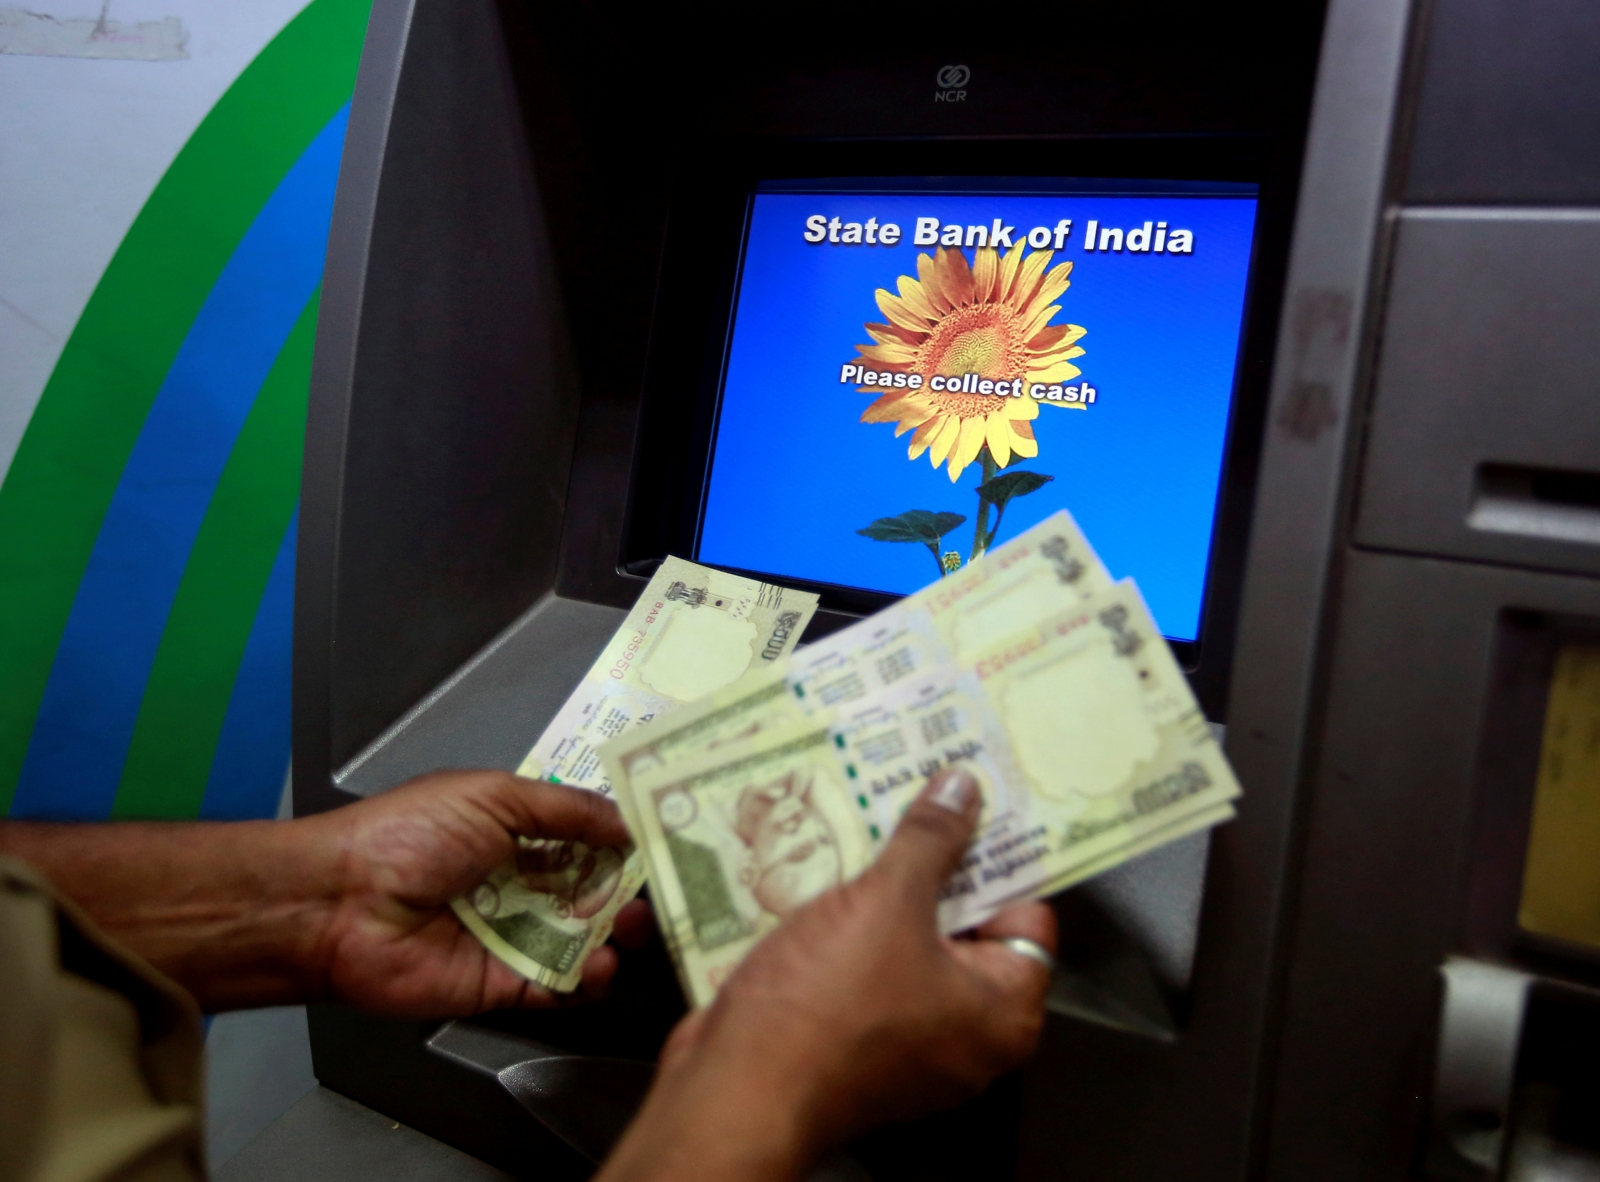 Major Indian banks block over 30 lakh debit cards after security breach